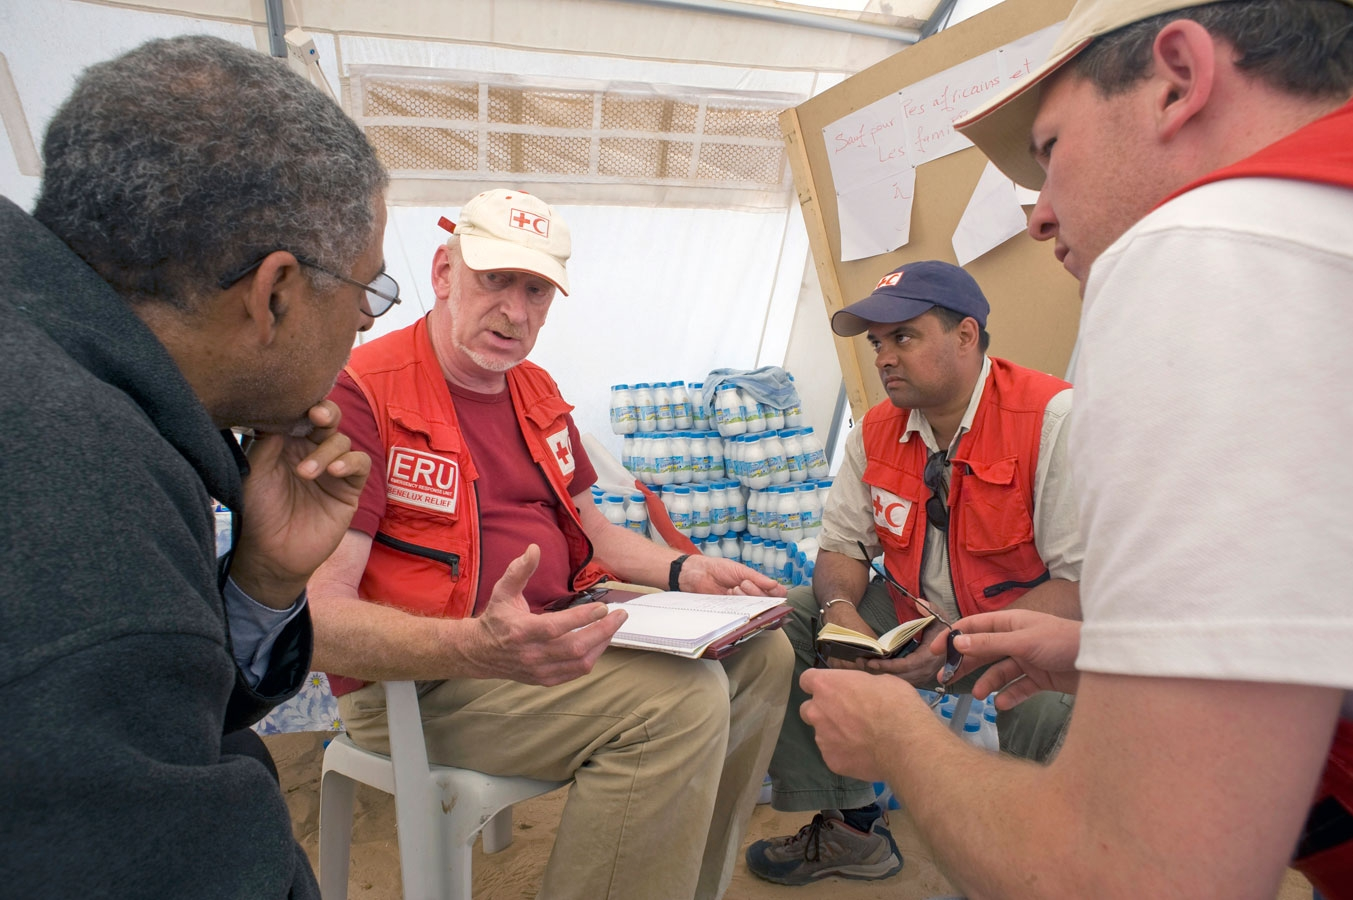 <p>IFRC and Tunisia Red Crescent personnel in a transit camp in Tunisia discuss how to feed the growing number of refugees fleeing civil war in Libya.</p>